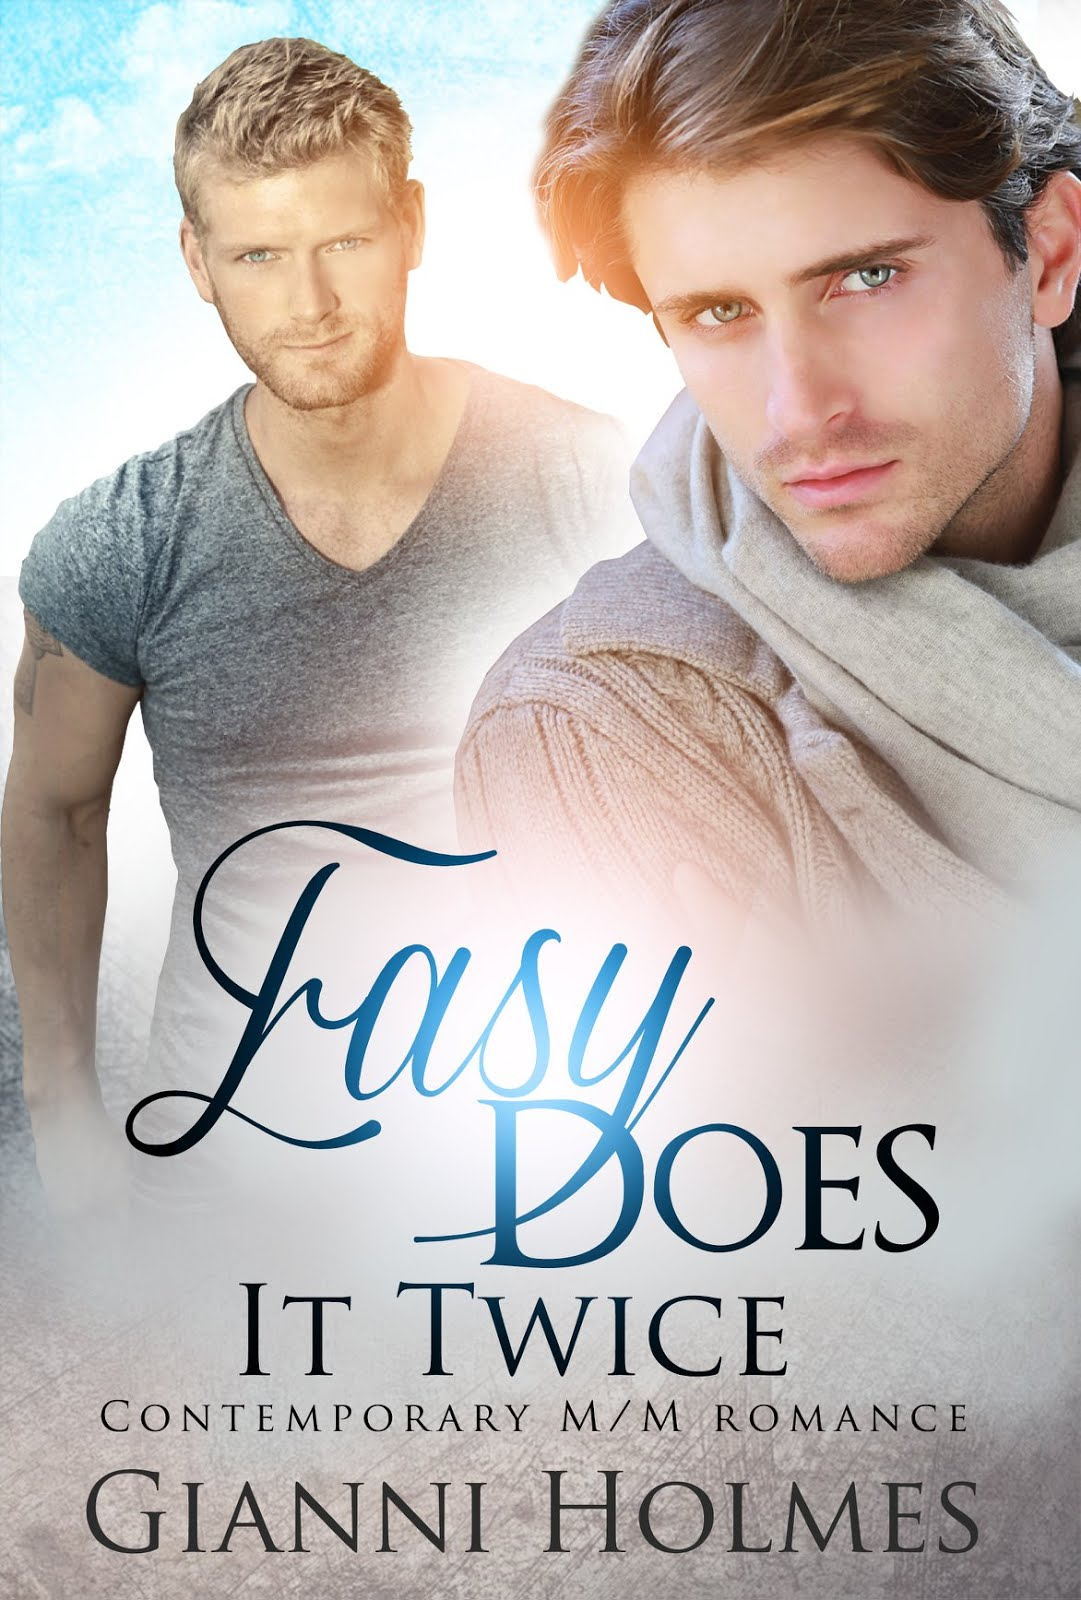 Easy Does It Twice by Gianni Holmes